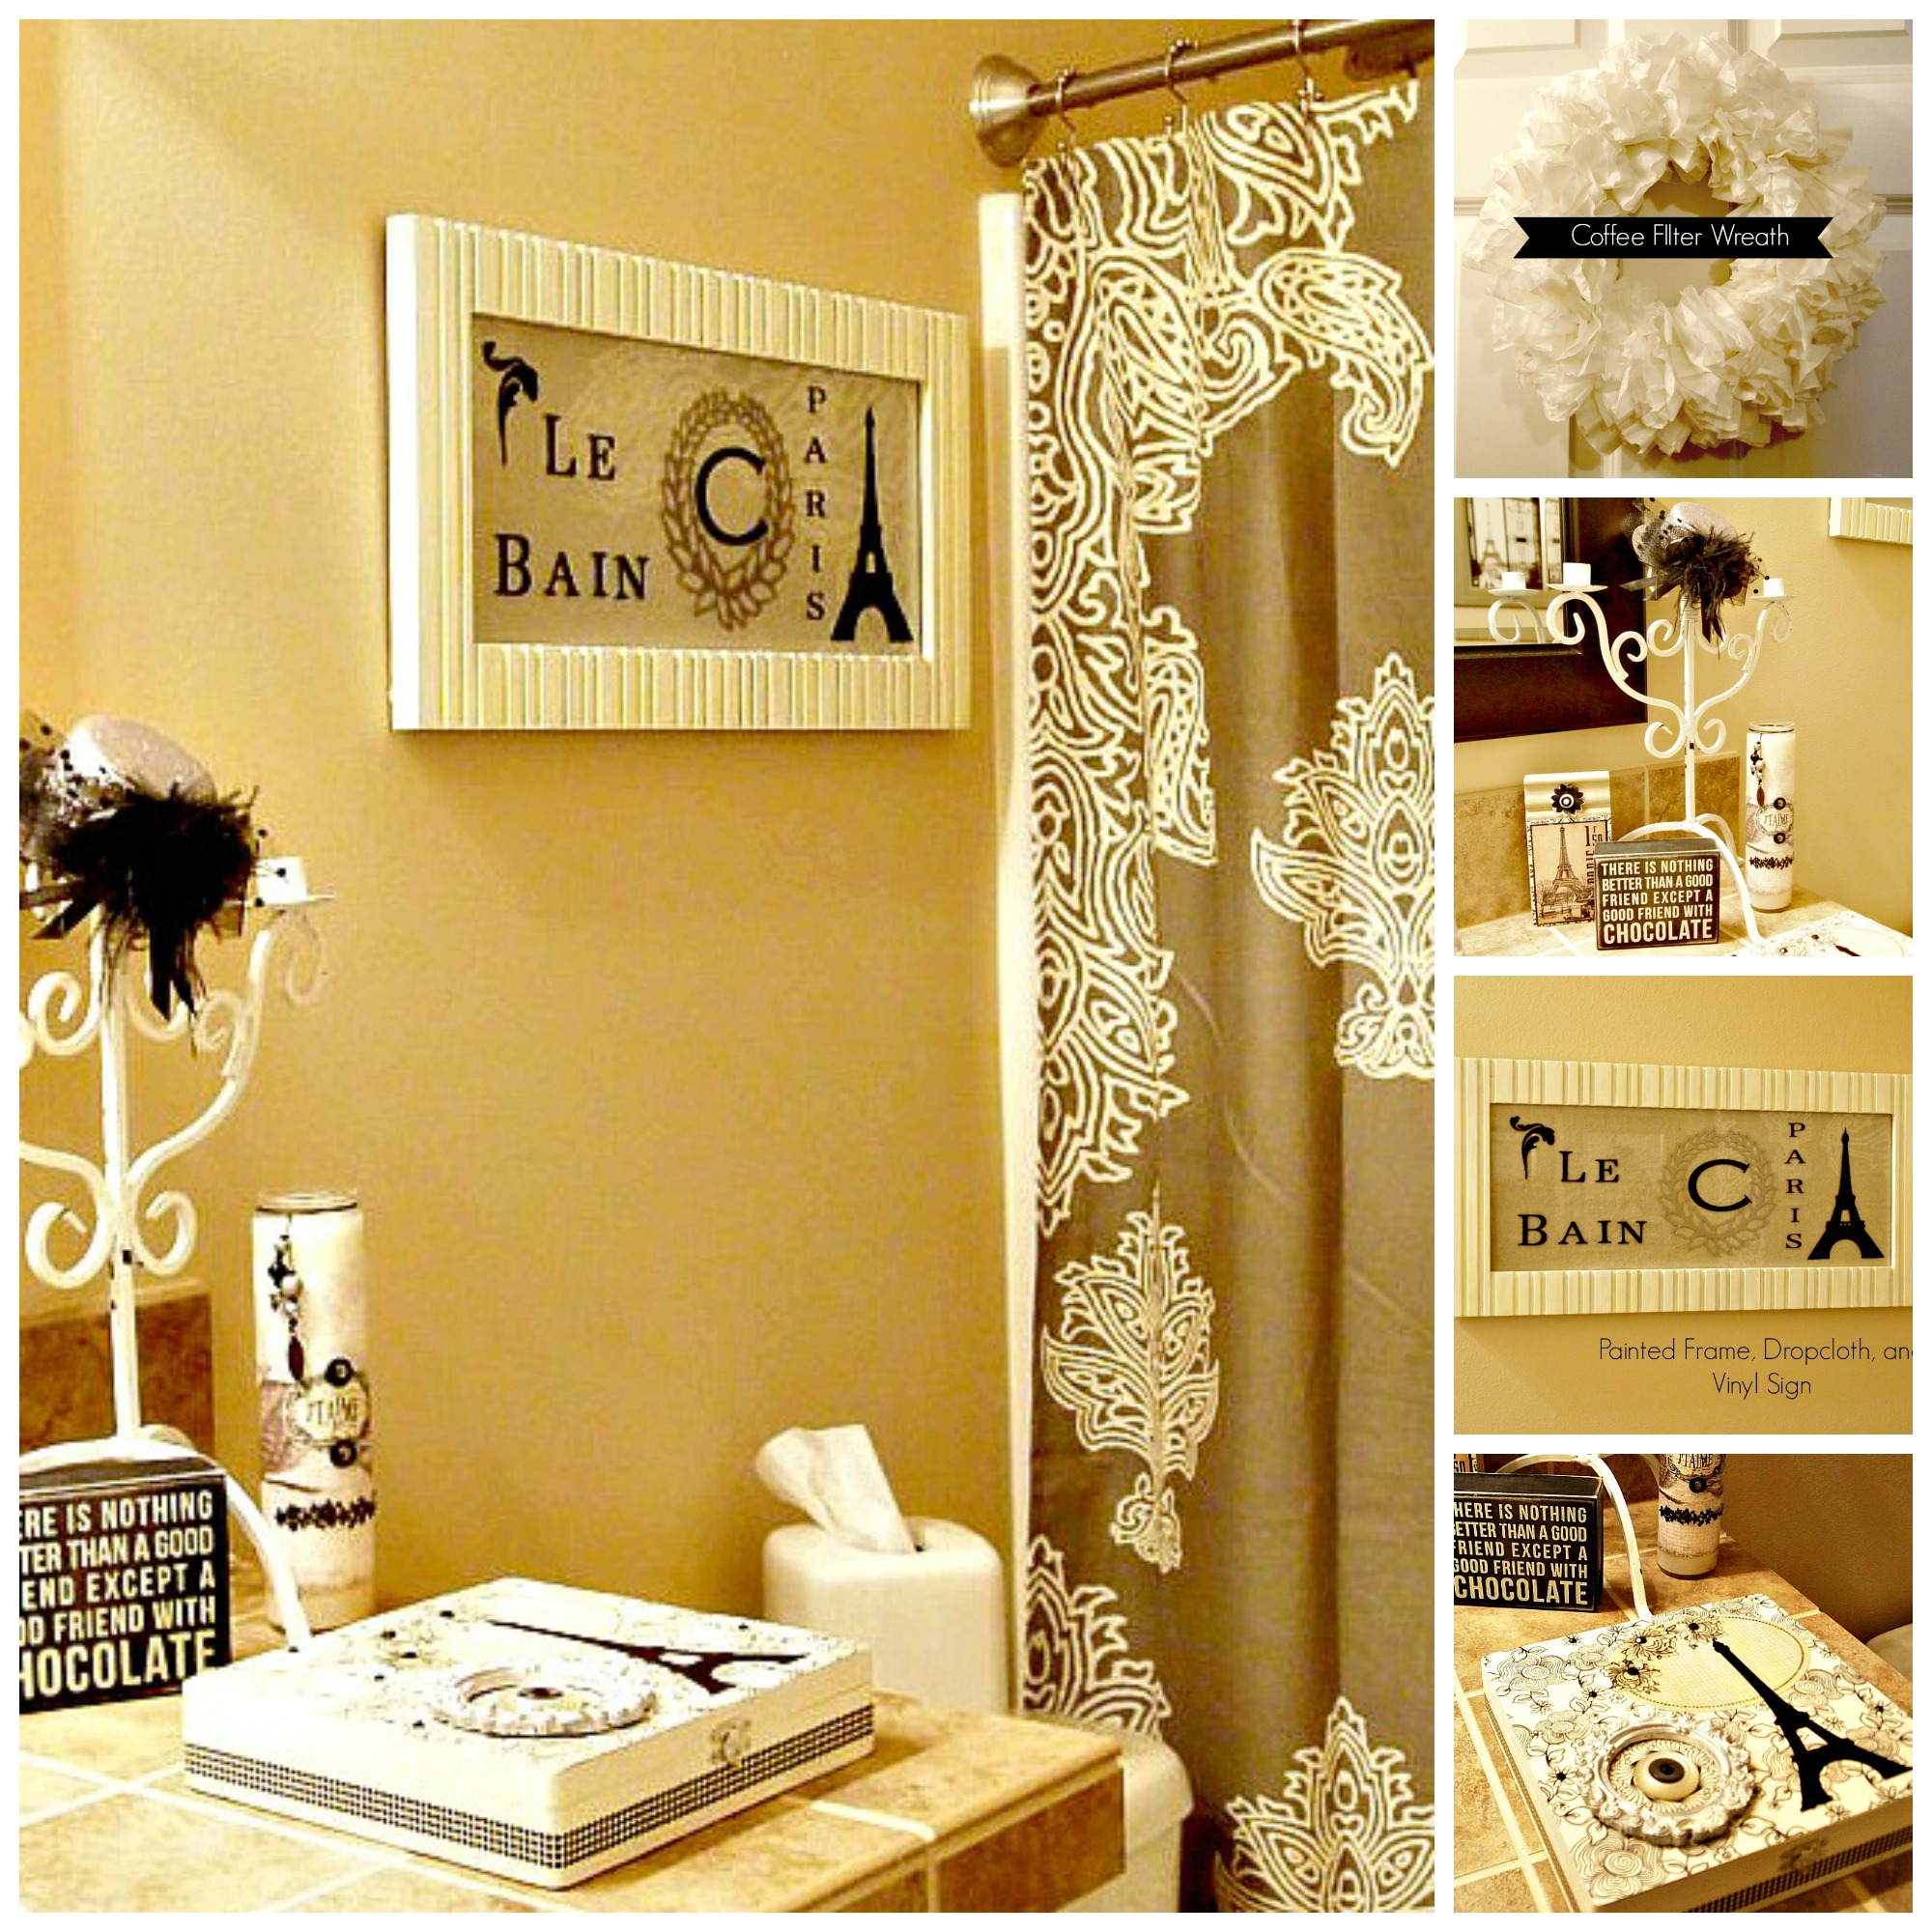 My Paris Bathroom: Bathroom Makeover Using What You Already Have